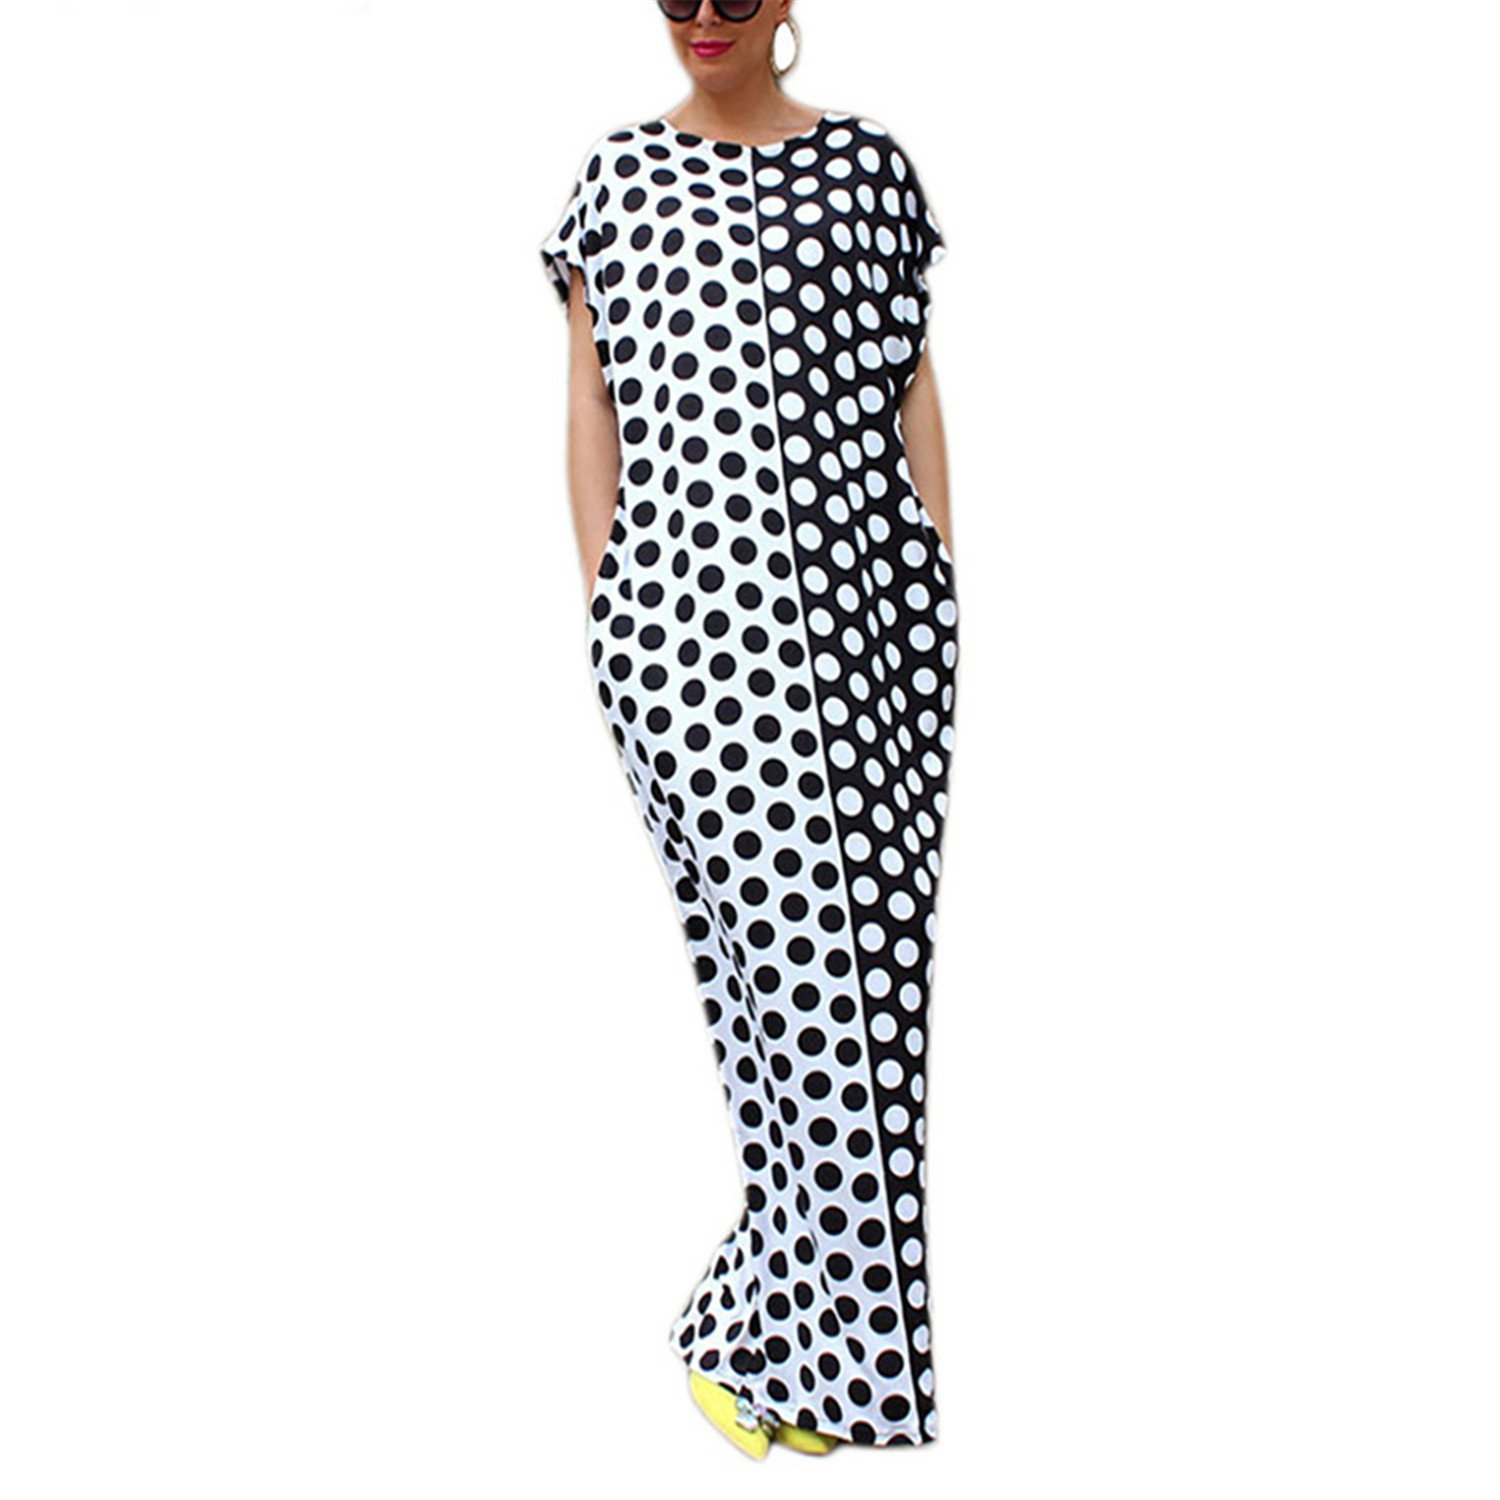 0a4c9750ee PiterNace Plus Size Boho Summer Dress O-Neck Long Maxi Dresses Black White  Polka Dot Printed Sexy Beach Dress NS8447 at Amazon Women s Clothing store